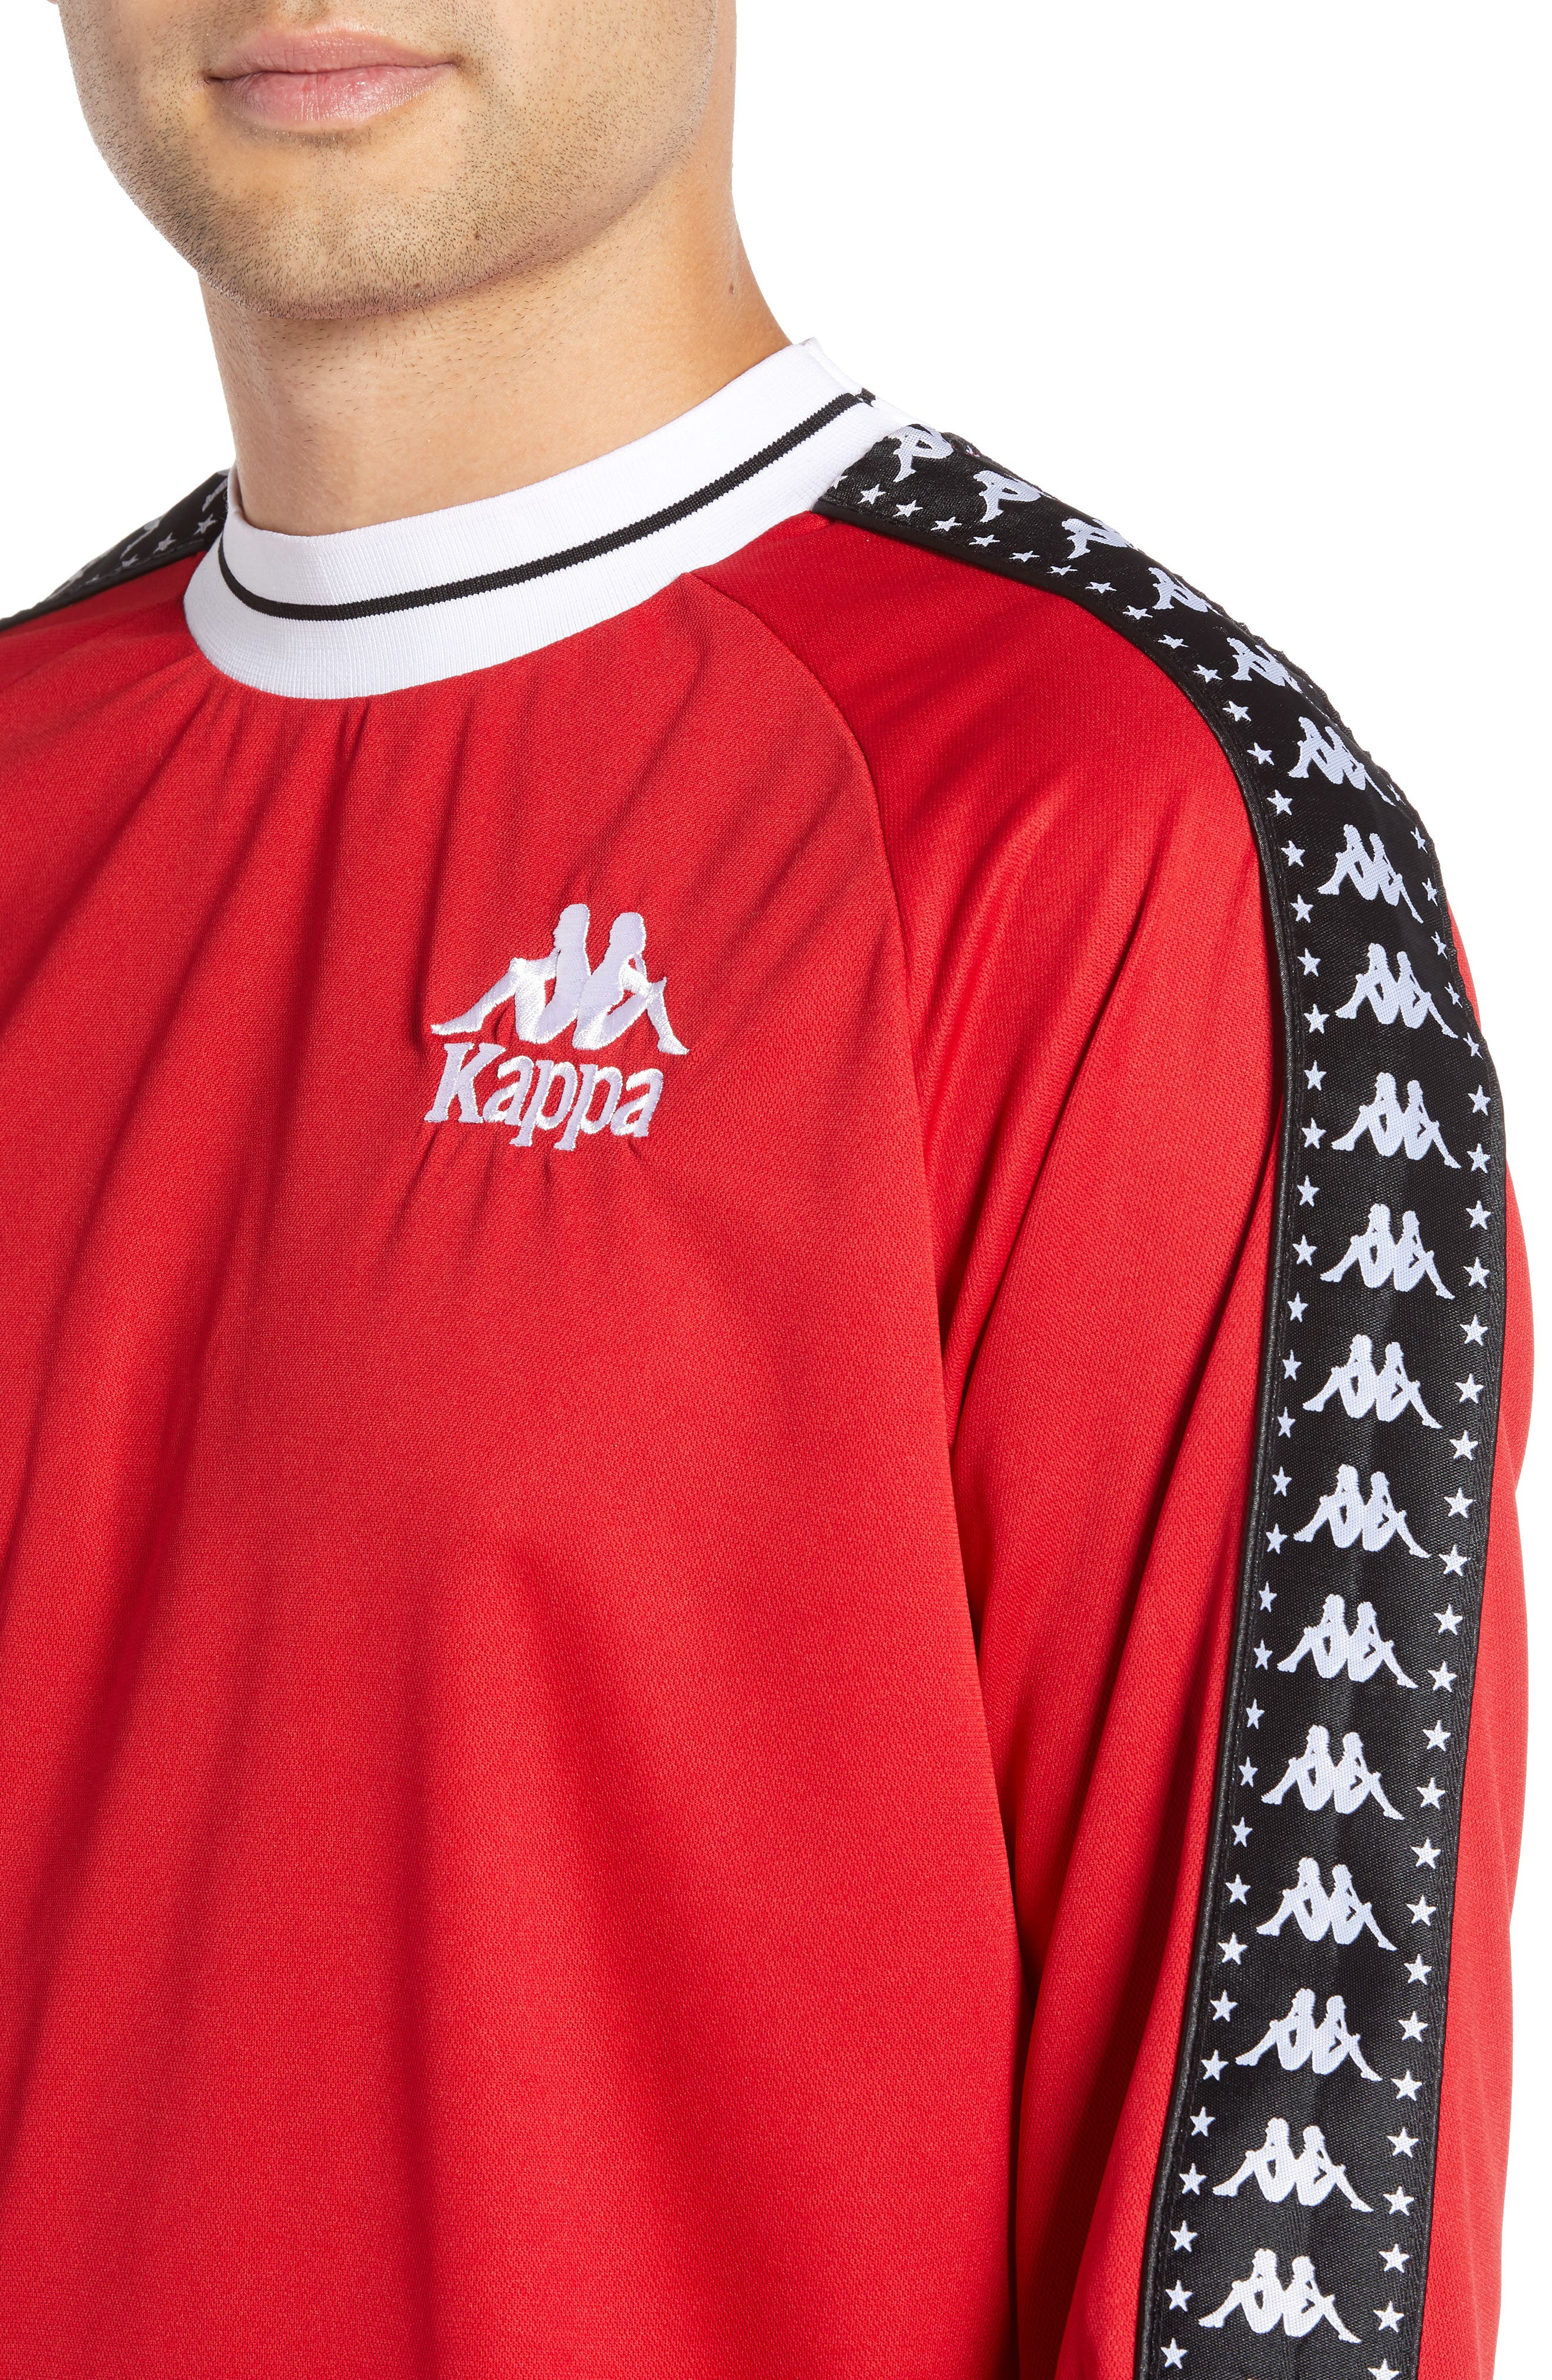 Authentic Aneat Logo Taped Long Sleeve T-Shirt,                             Alternate thumbnail 4, color,                             RED/ BLACK/ WHITE